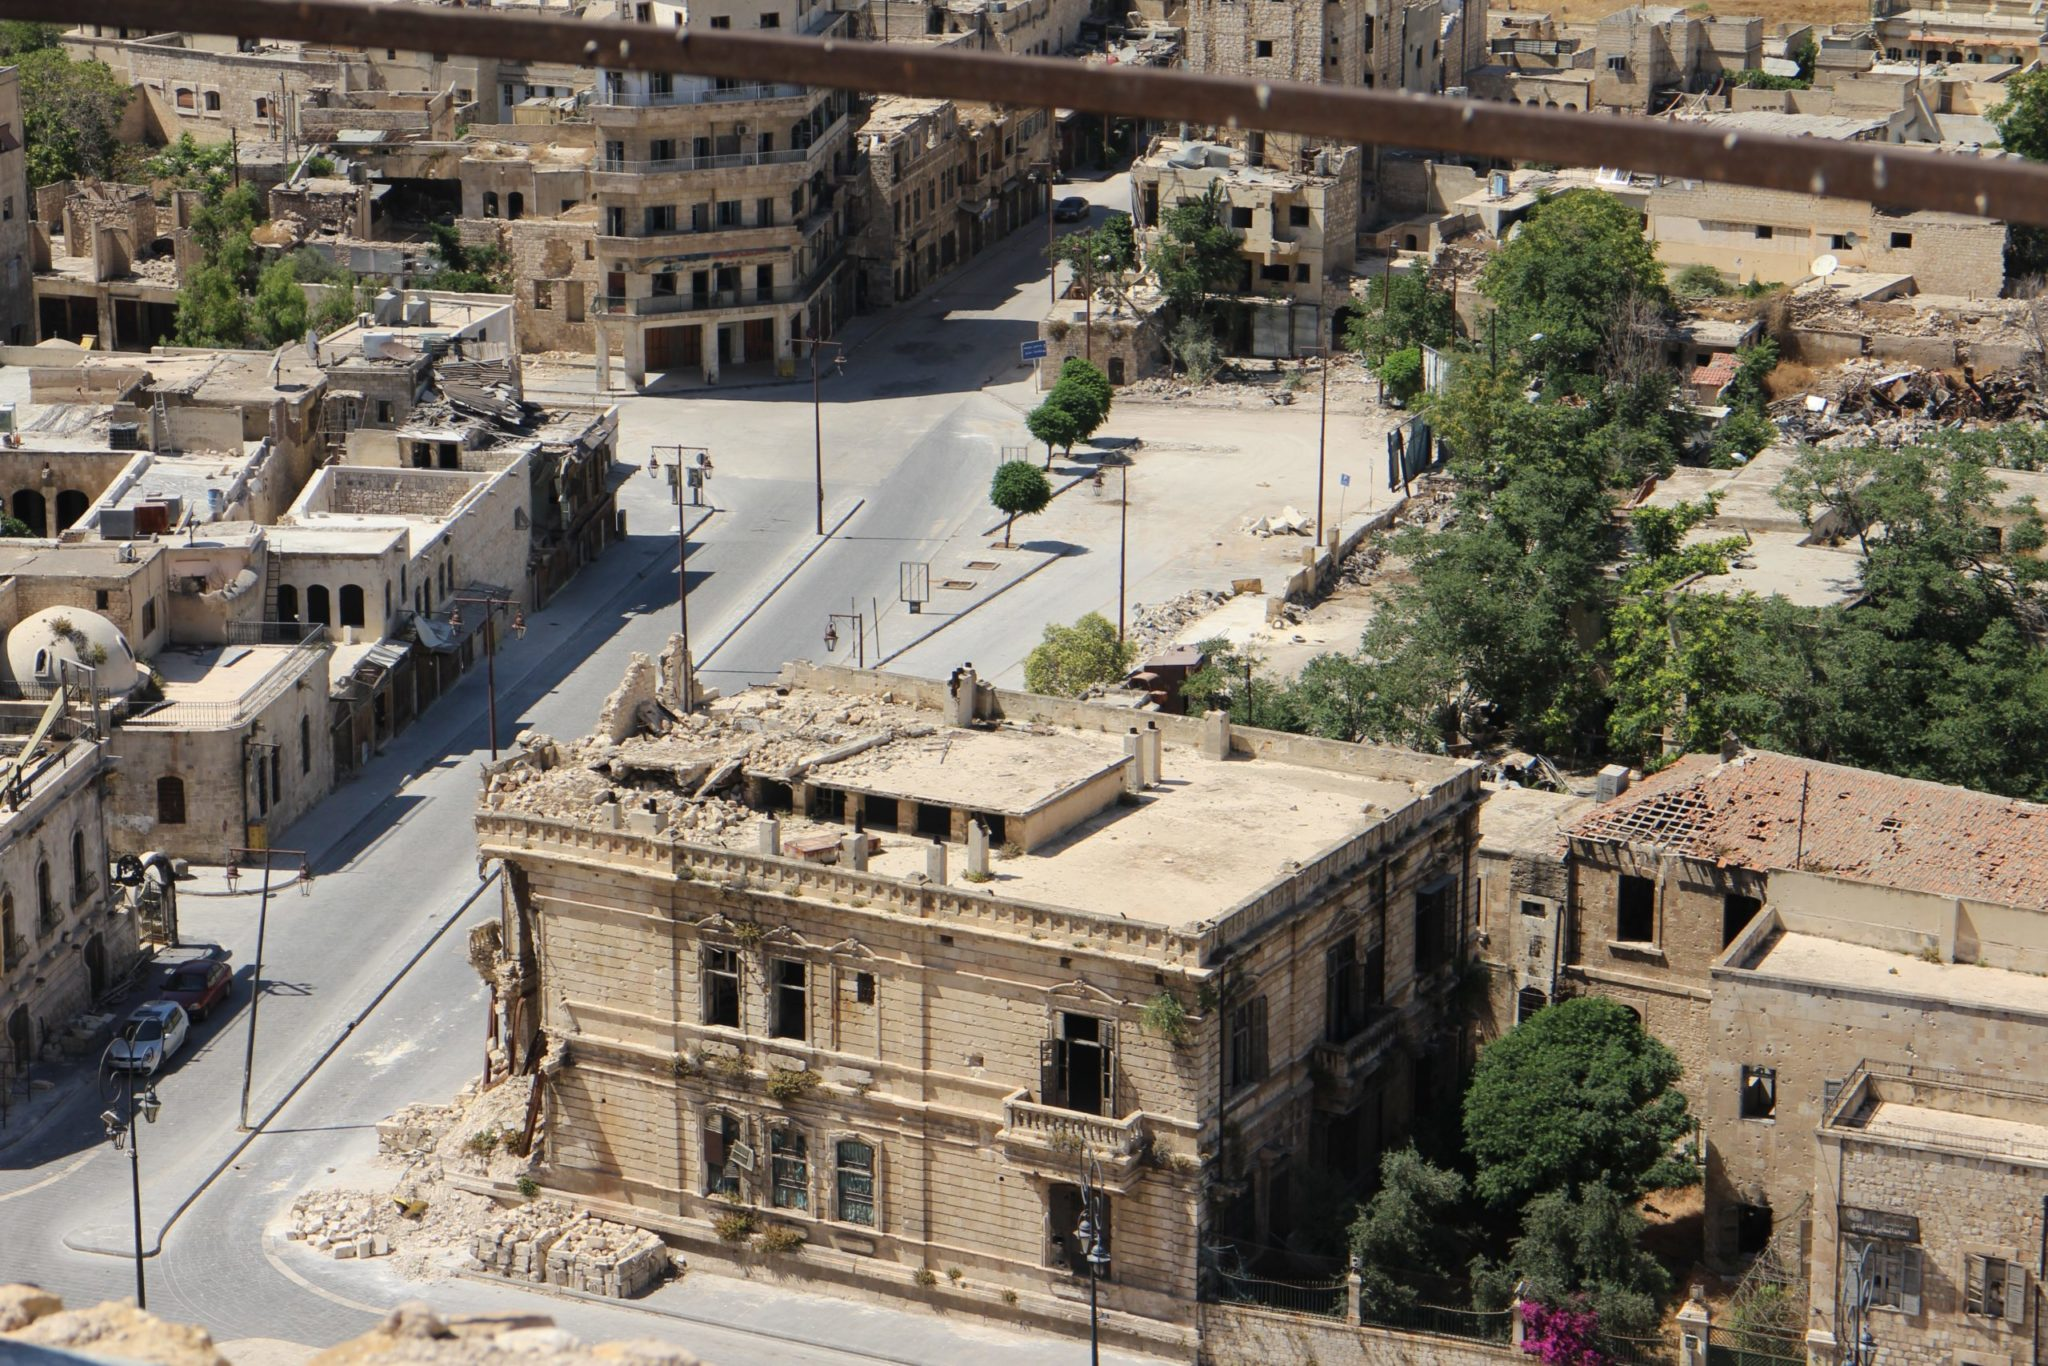 Concrete buildings in Aleppo, Syria